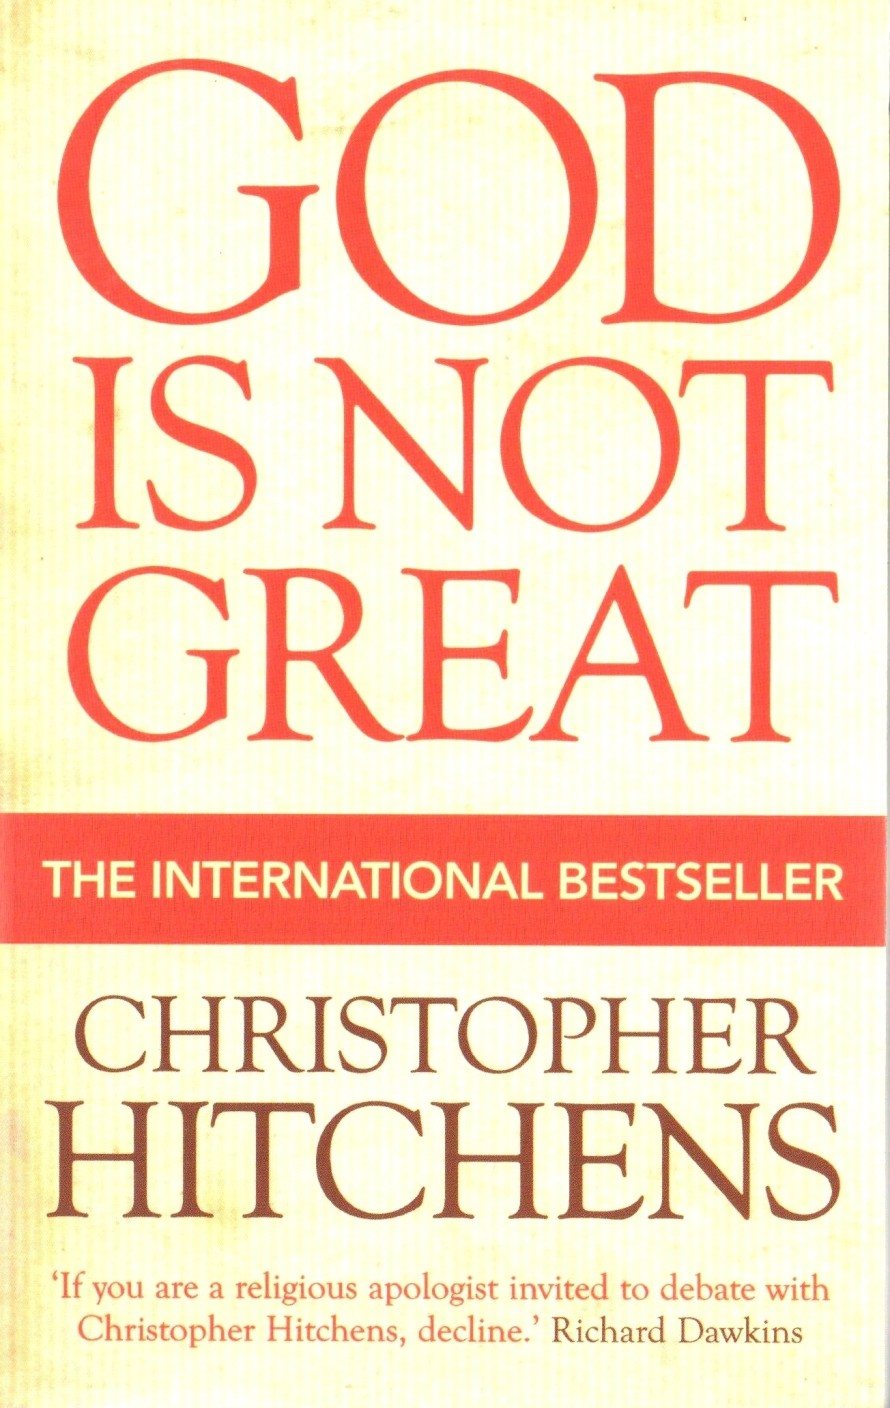 religion poisons everything by christopher hitchens God is not great by christopher hitchens contents one - putting it mildly 03 two - religion kills 07  not then visited scenes of nature where almost everything was hideously indifferent or hostile to human life, if not life itself  religion might not be true, but never mind that, since it can.